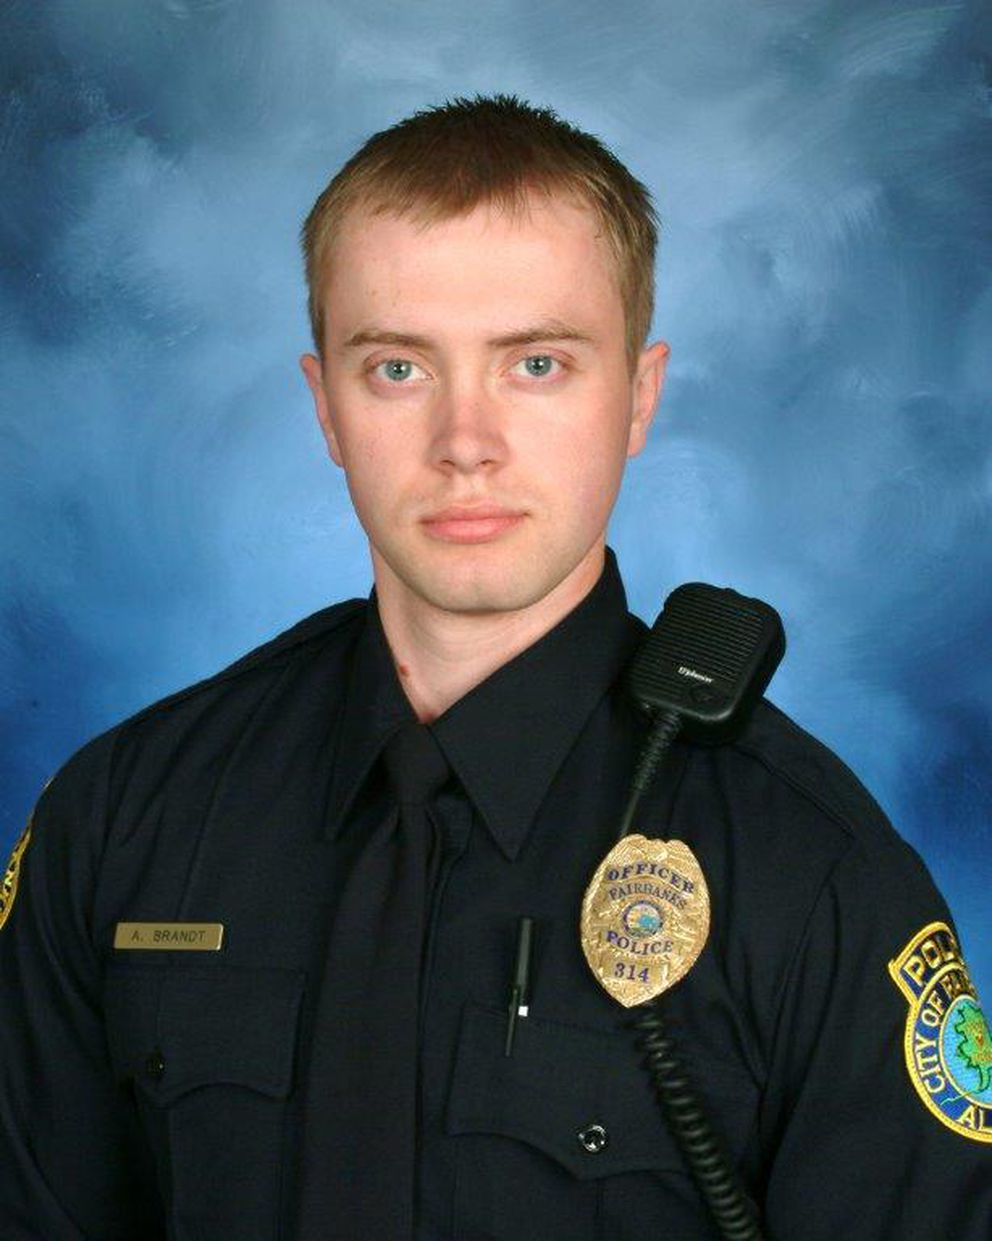 Fairbanks police officer Allen Brandt was shot in the line of duty Sunday. (Fairbanks Police Department)